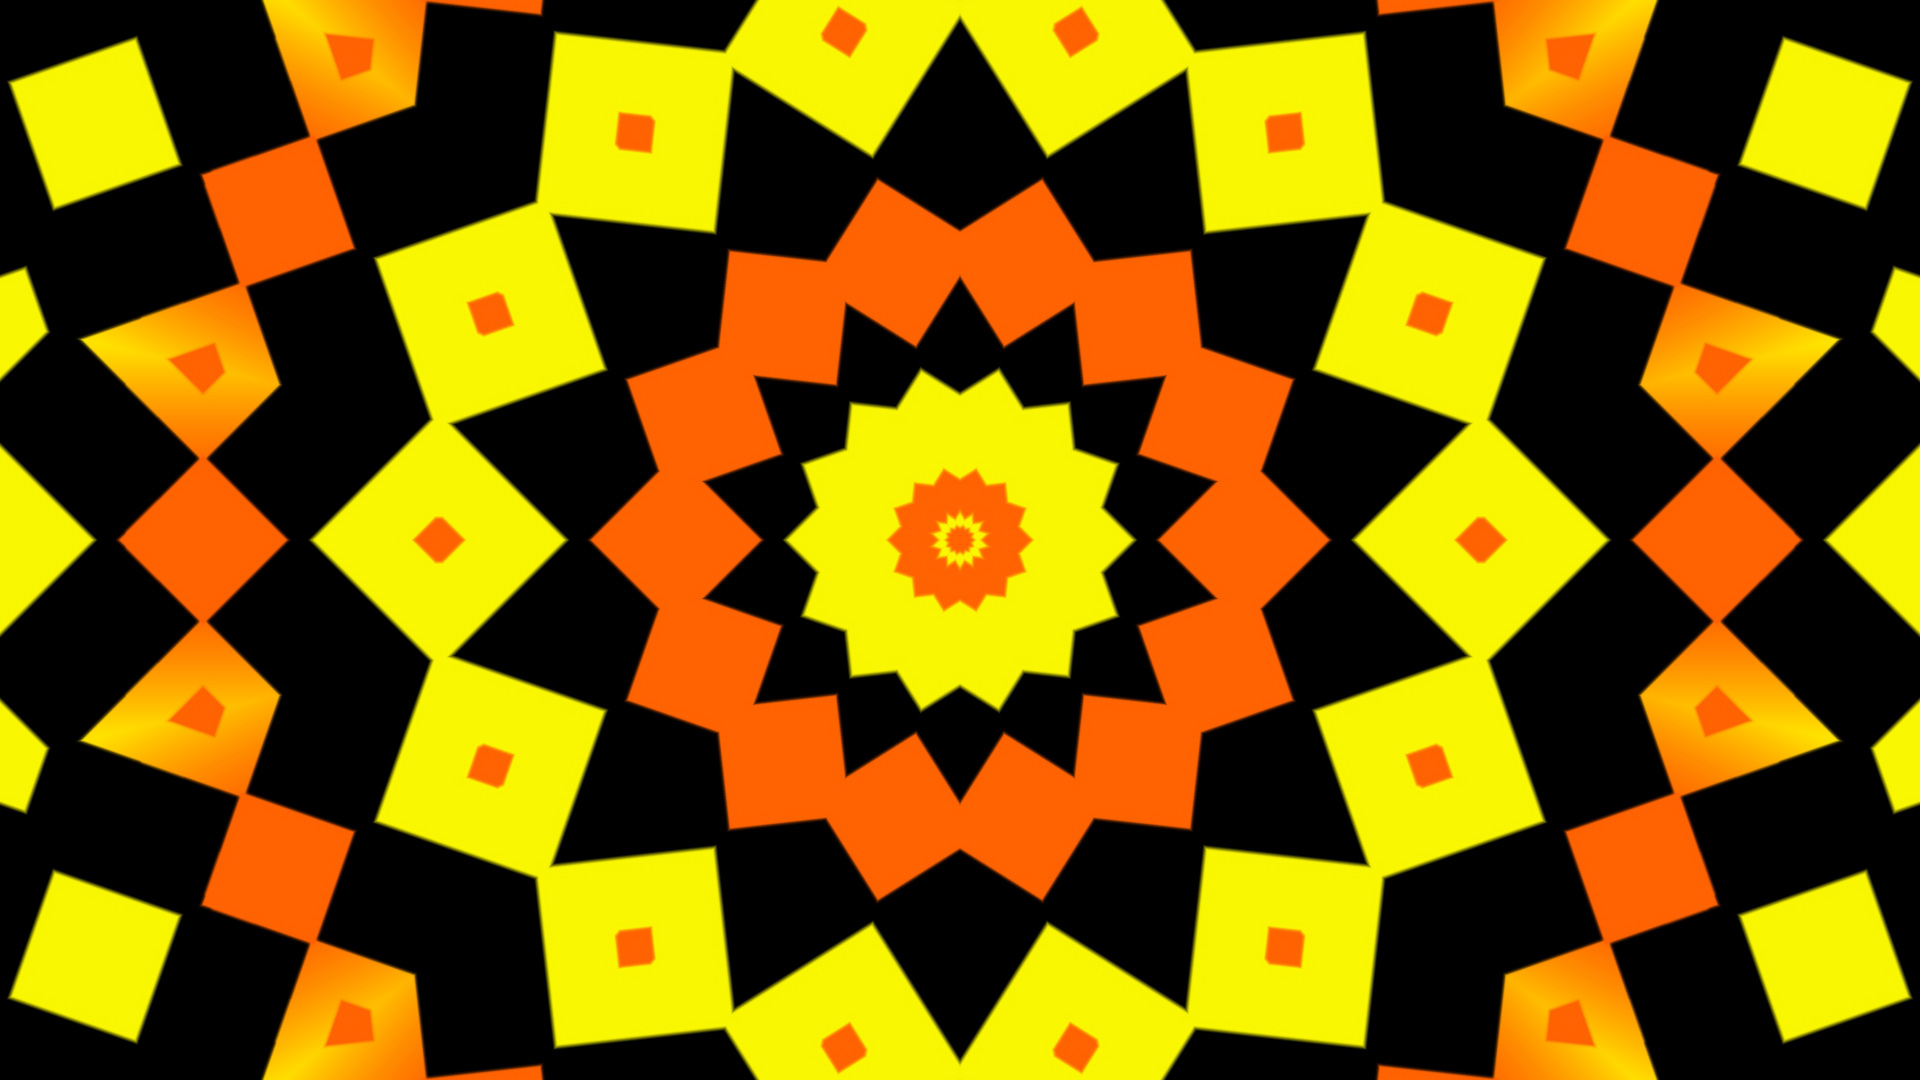 Abstract Colorful Digital Art Geometry Shapes Yellow Orange Color 1920x1080